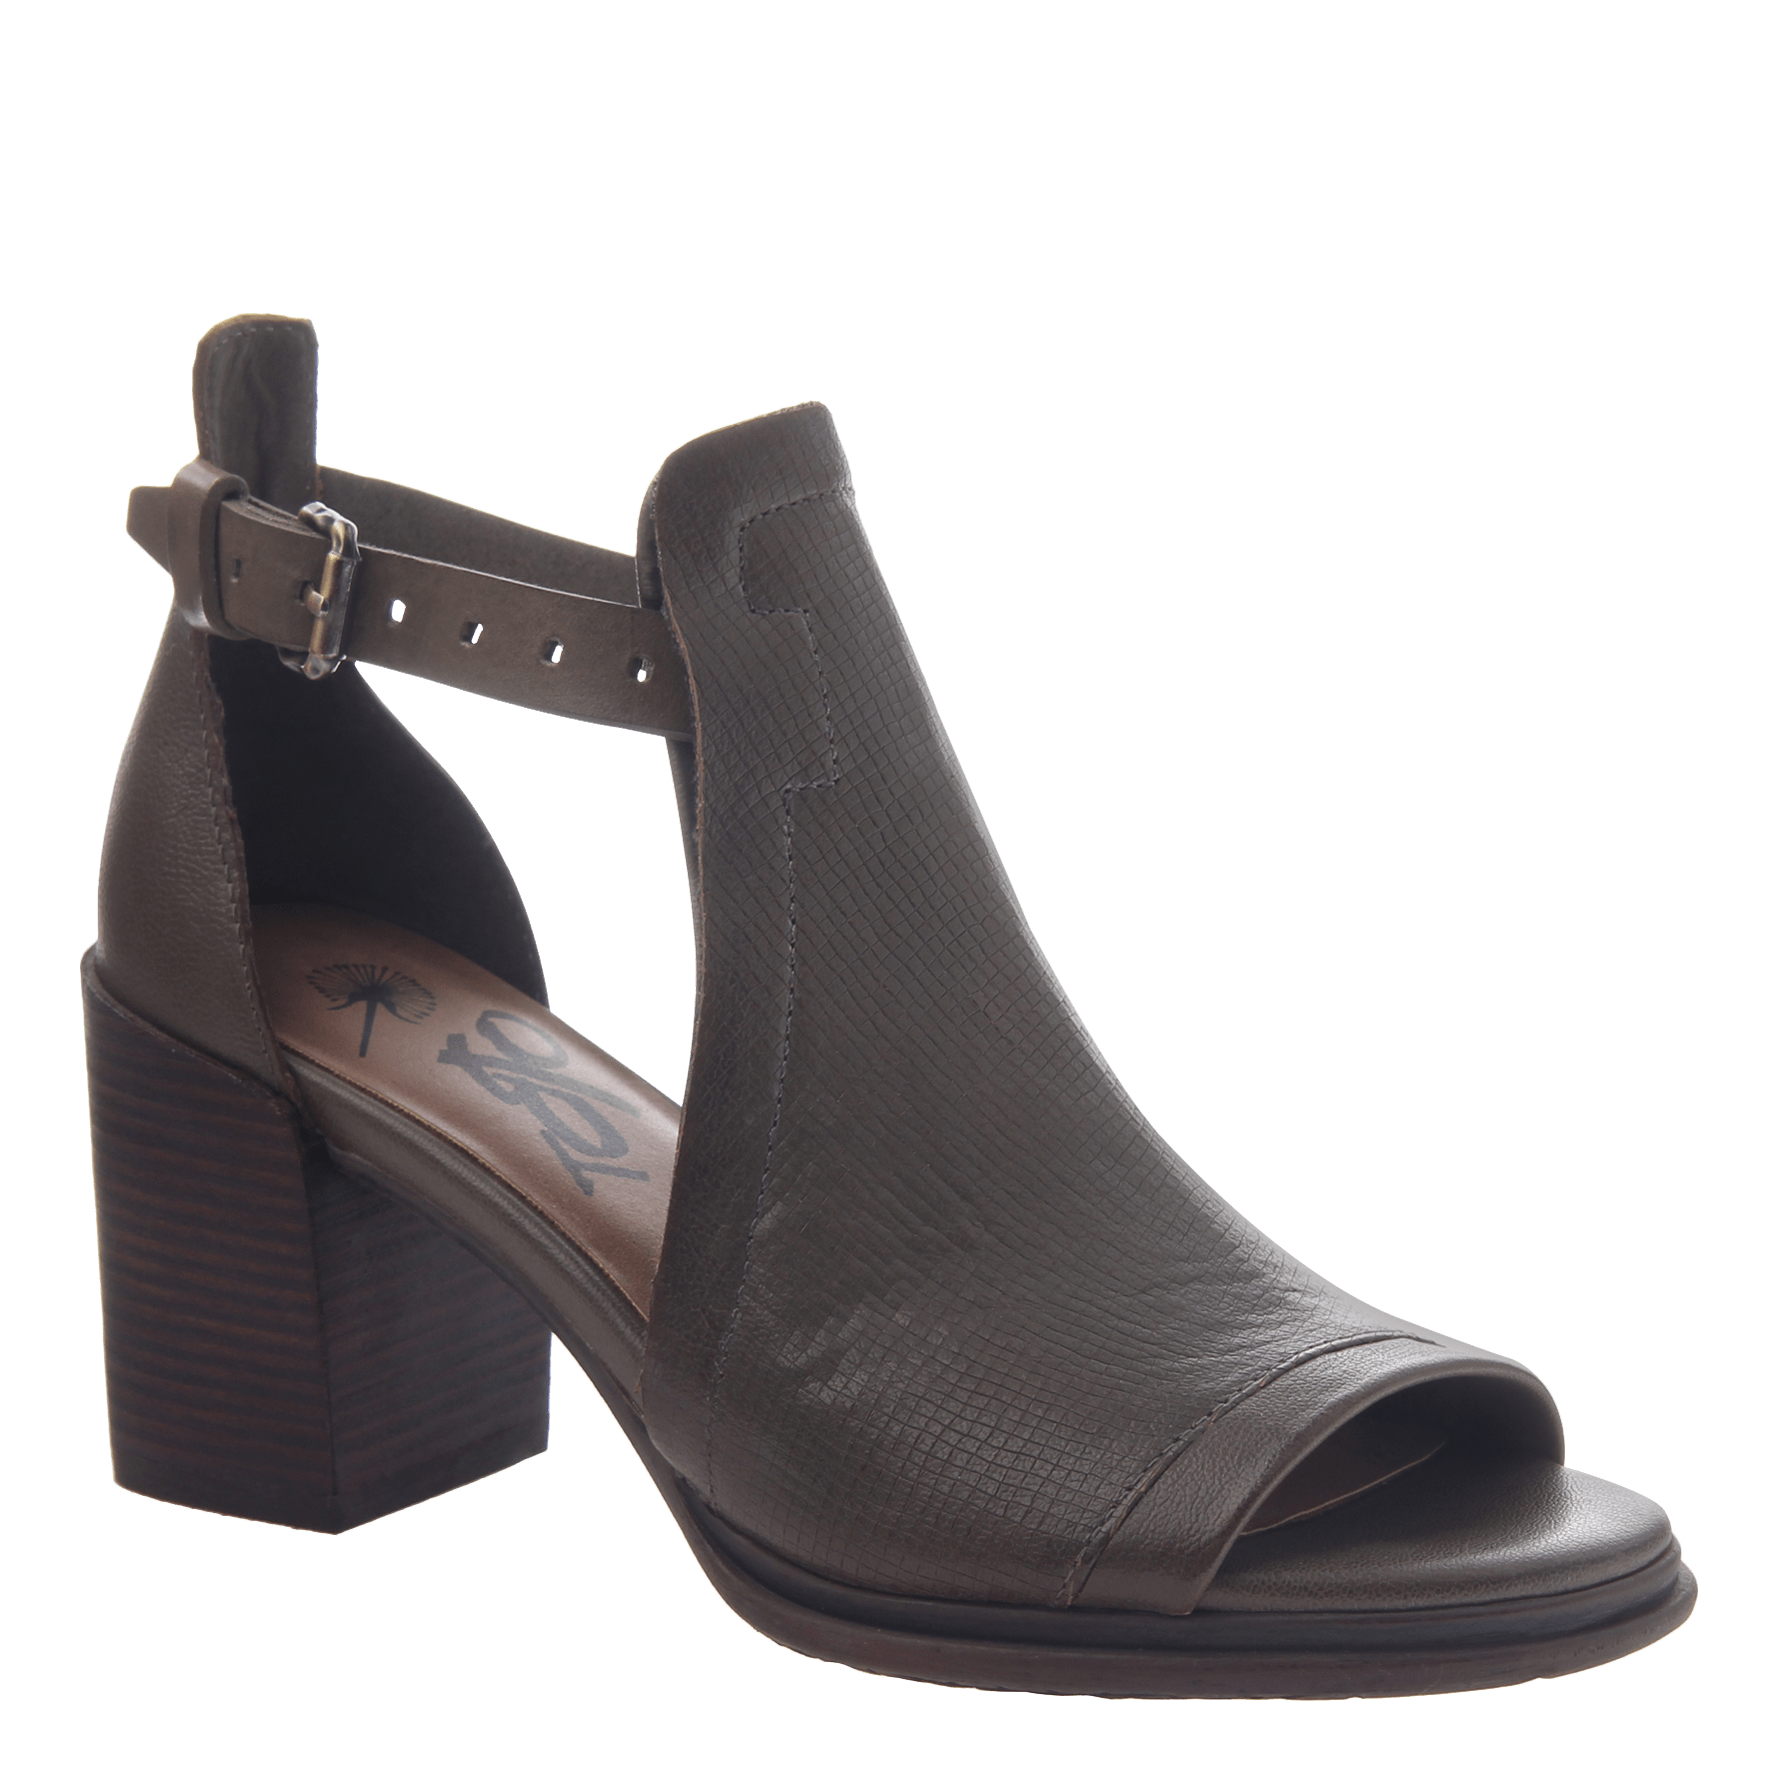 Metaphor women's heel in mint